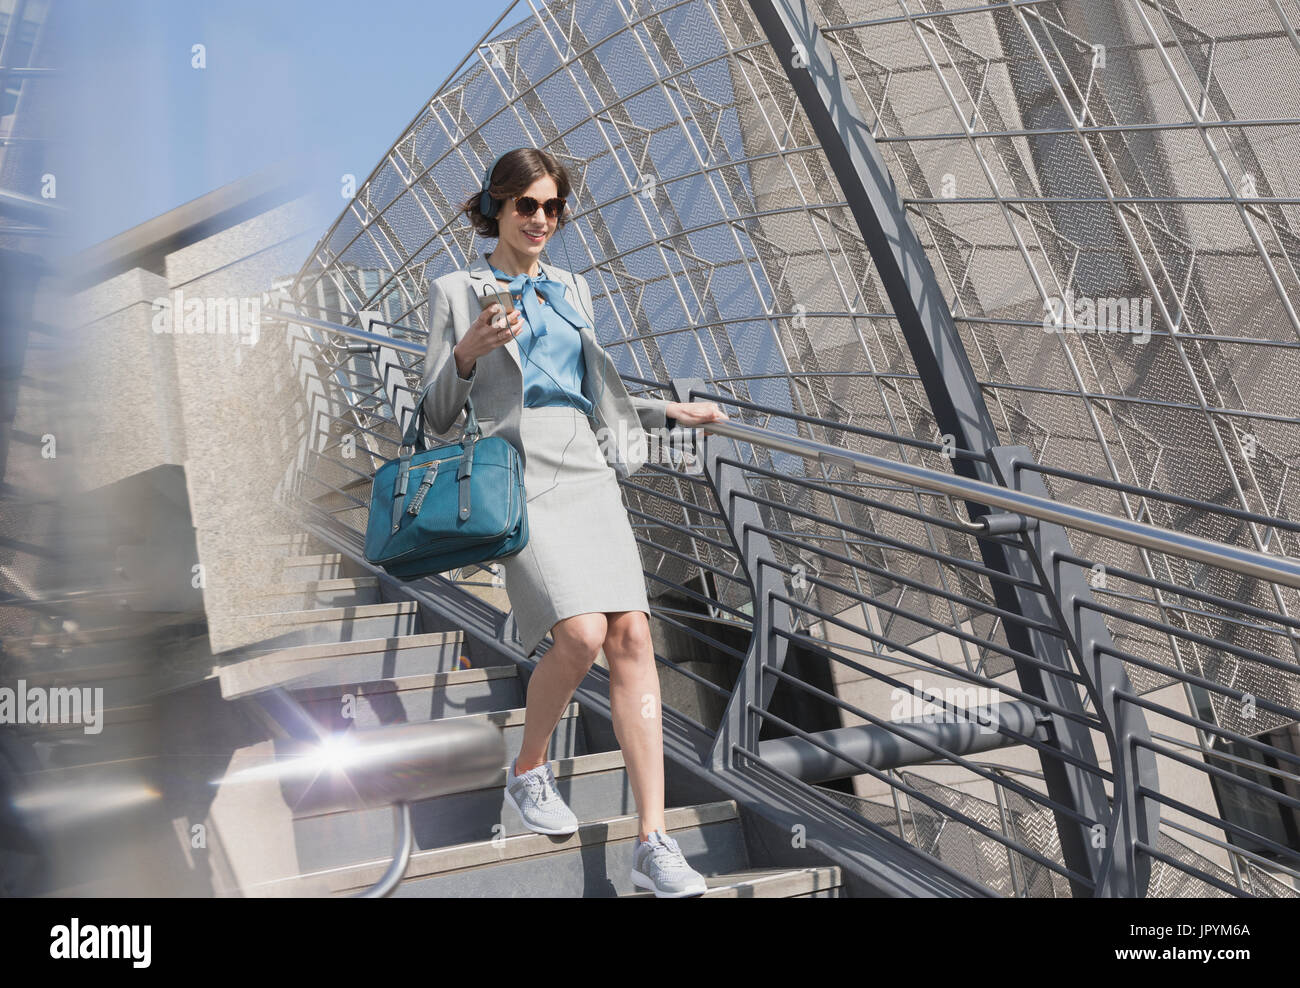 Businesswoman in athletic shoes with cell phone and headphones descending sunny urban stairs - Stock Image